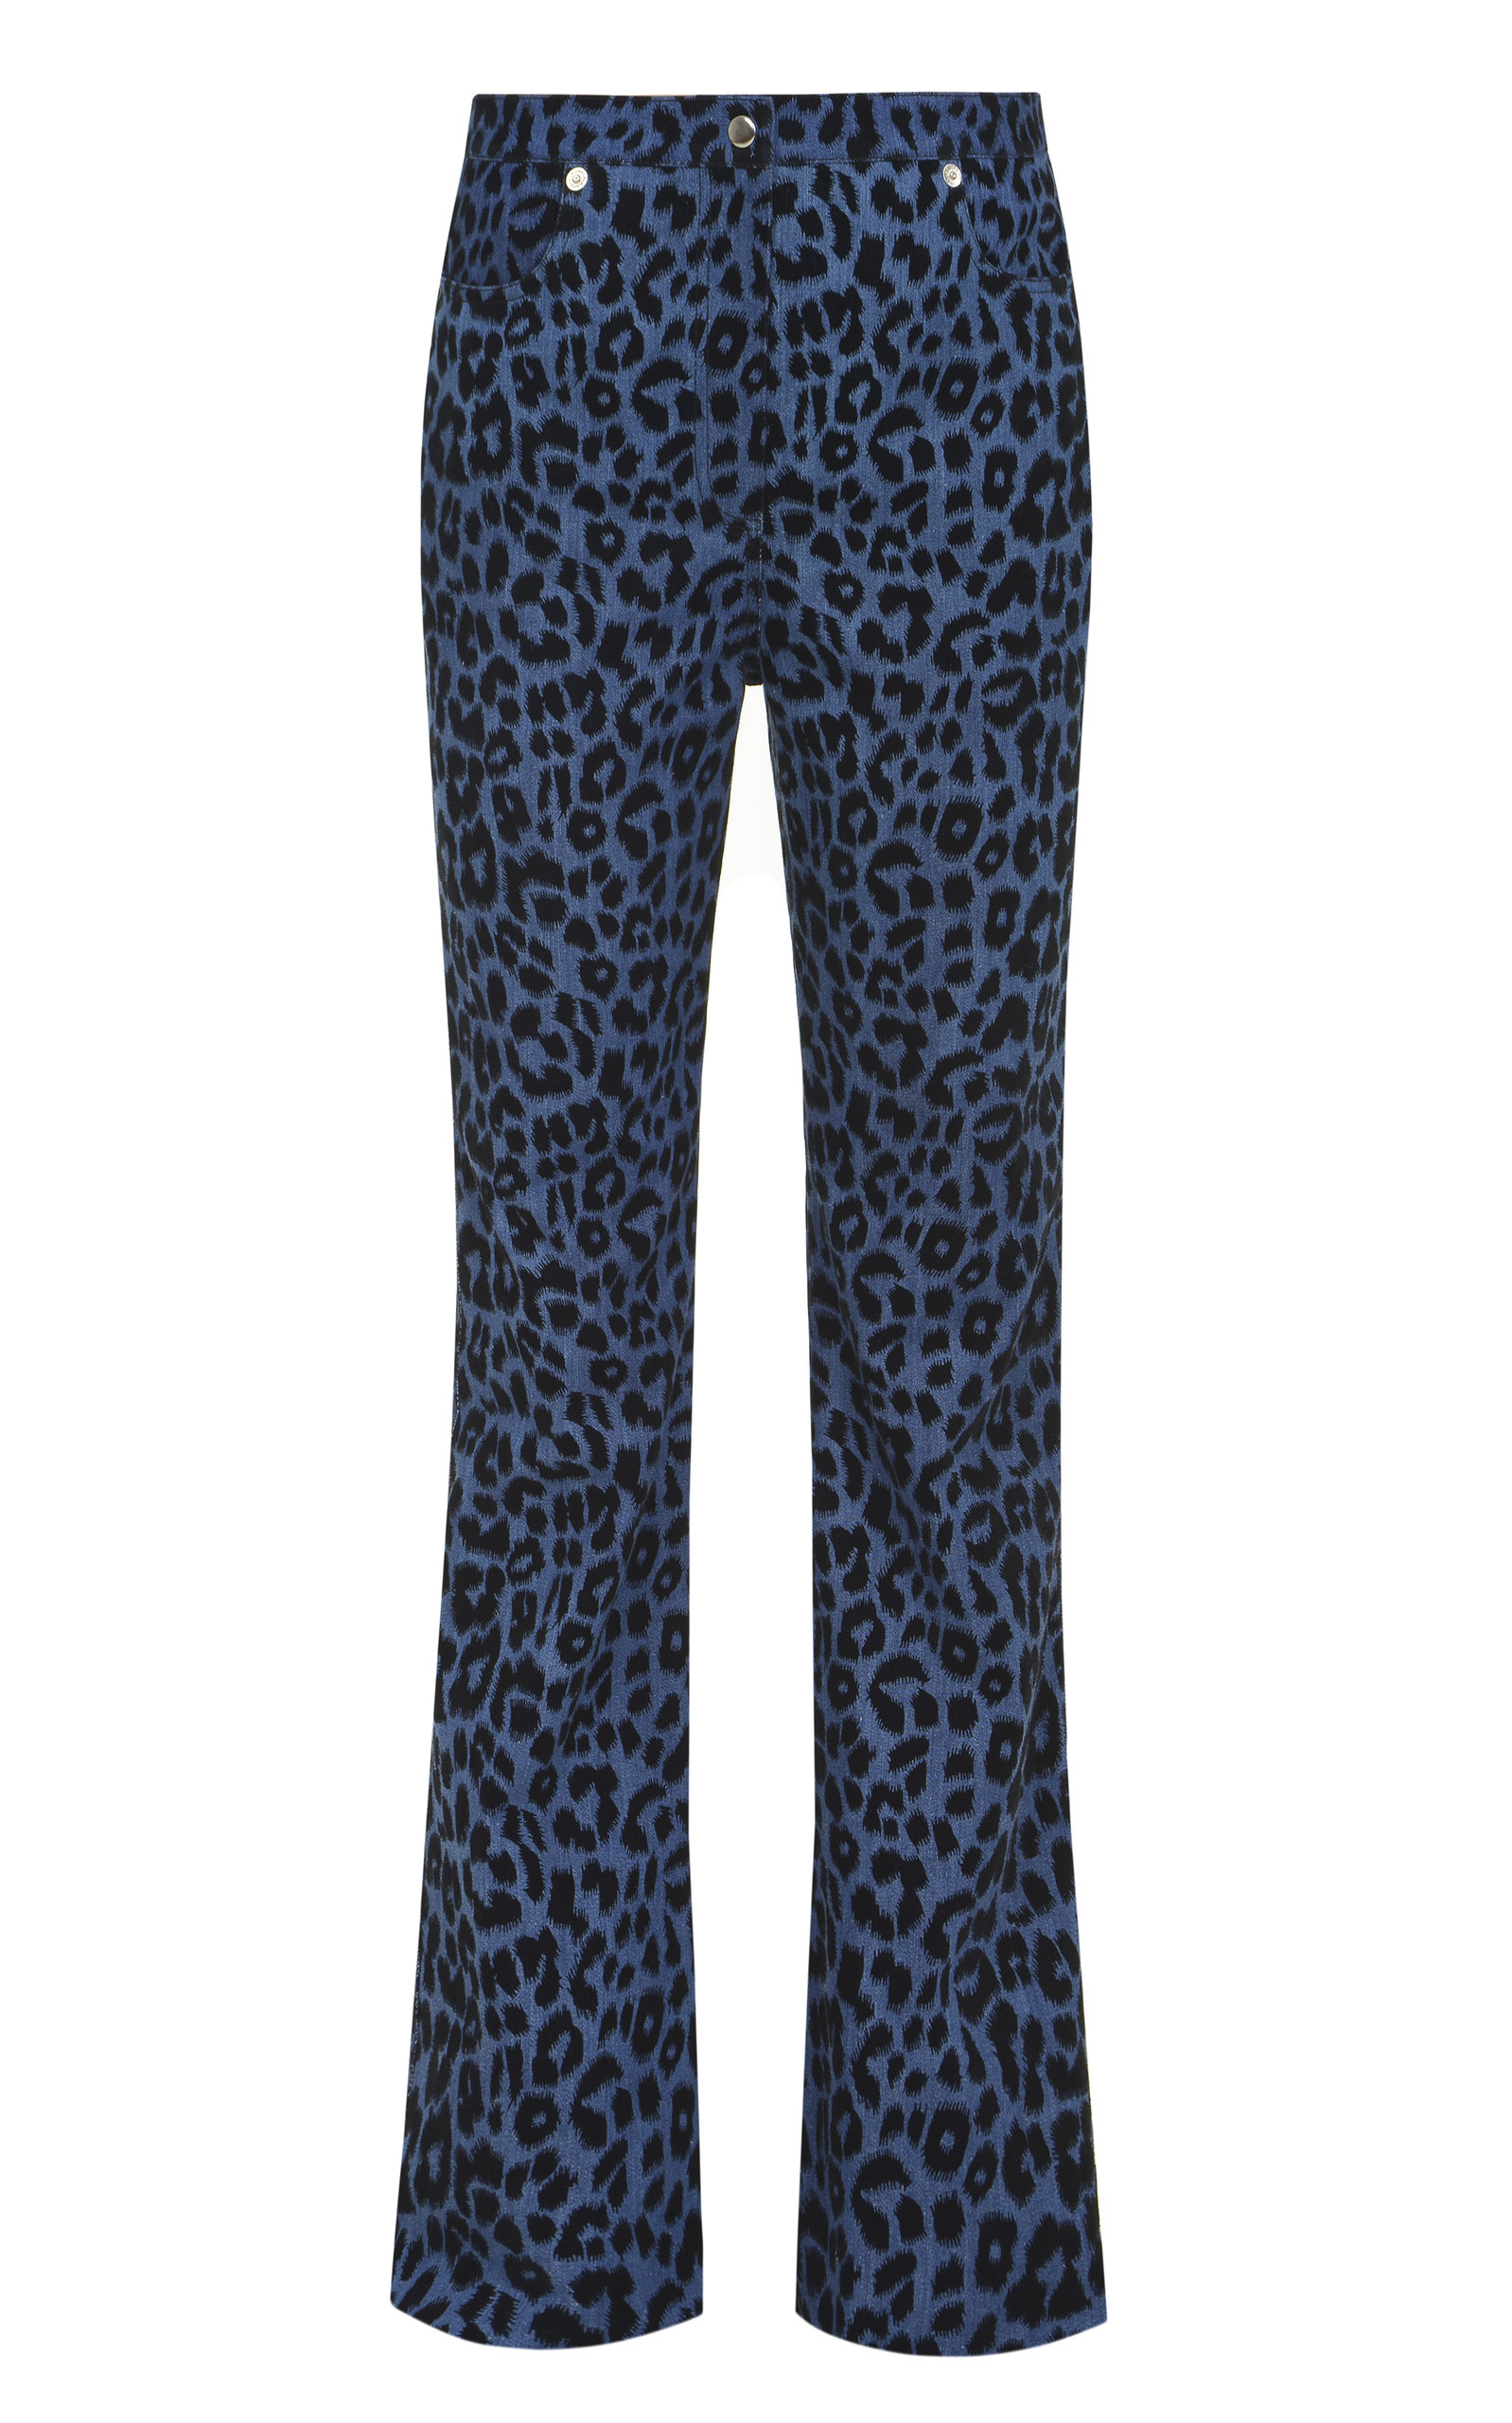 Women's Leopard Printed Stretch Mid-Rise Straight-Leg Jeans